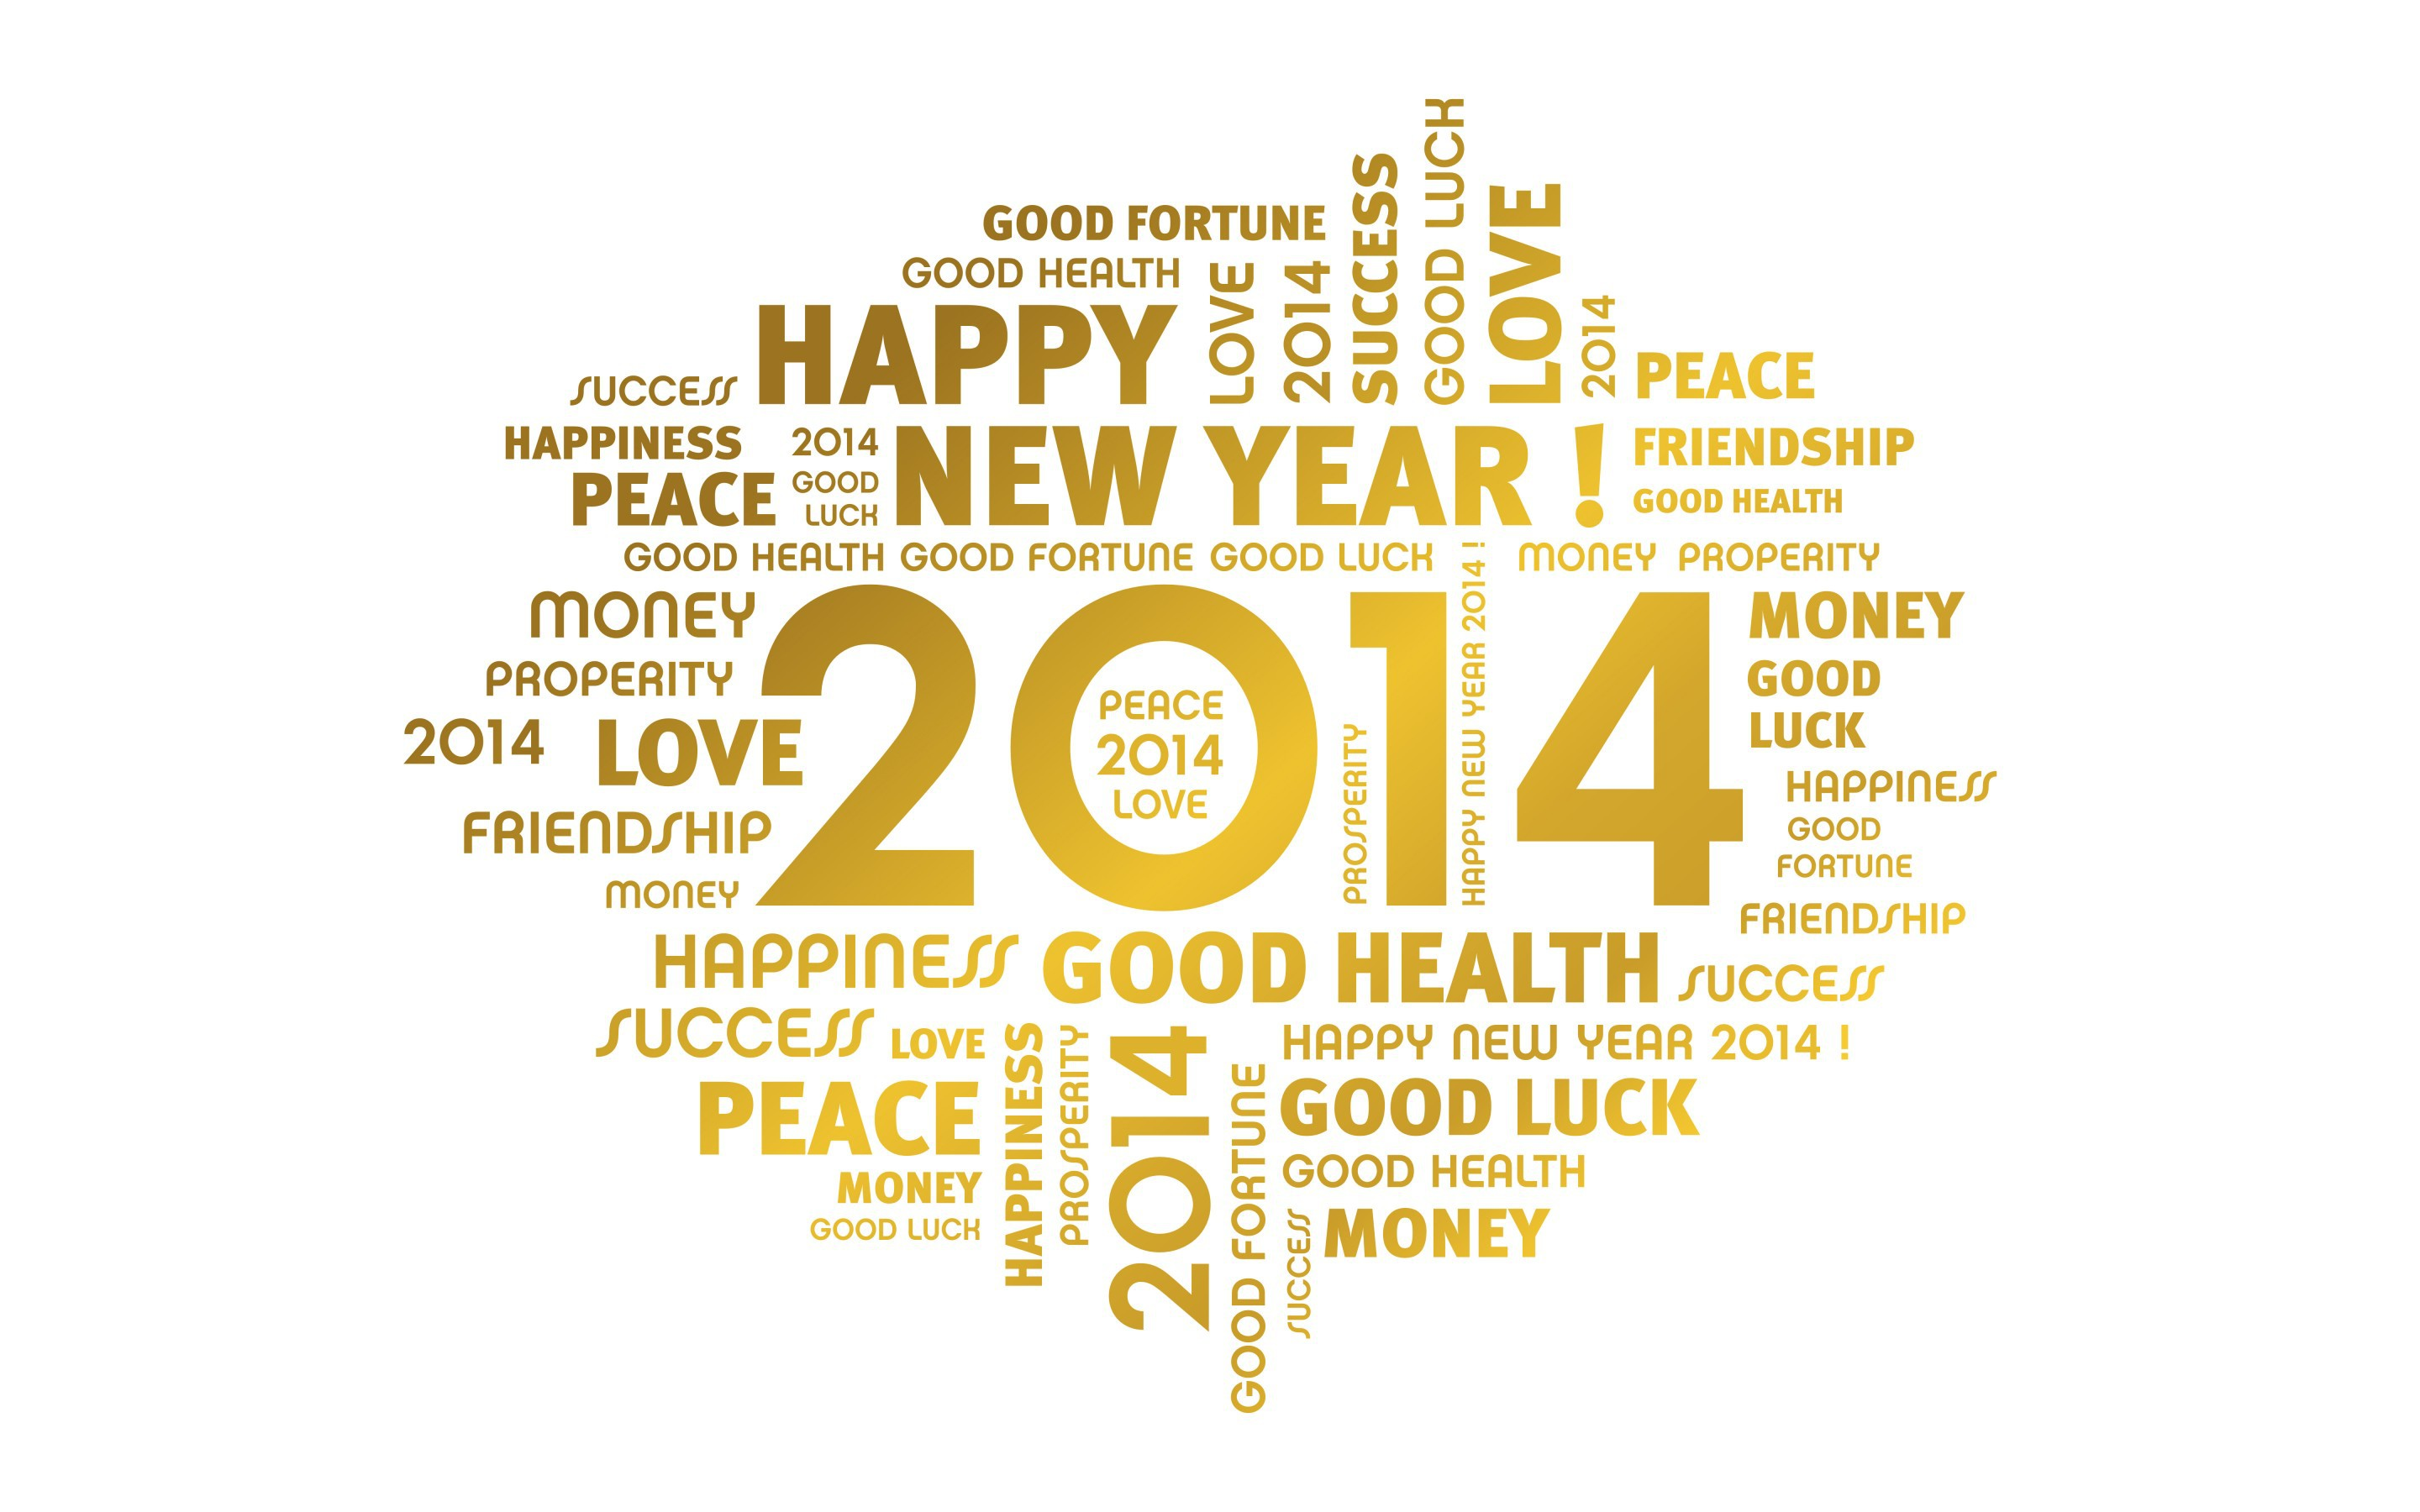 BG: Five Wishes For The New Year - Brown Girl Magazine